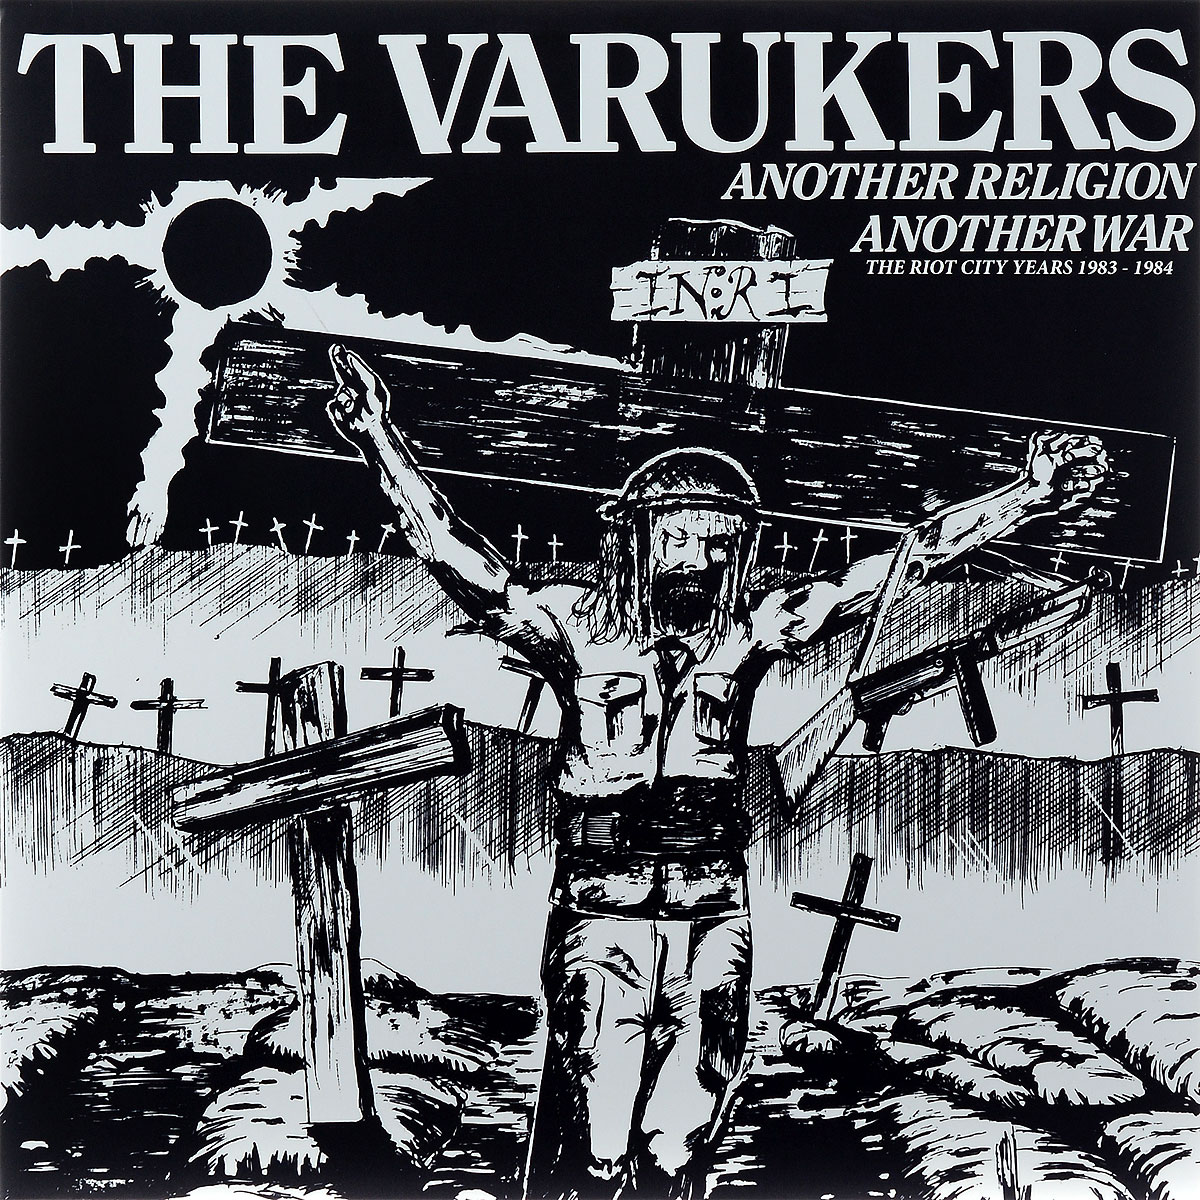 The Varukers The Varukers. Another Religion Another War. The Riot City Years 1983-1984. Limited Edition (2 LP) space deliverance limited edition glow in the dark vinyl lp